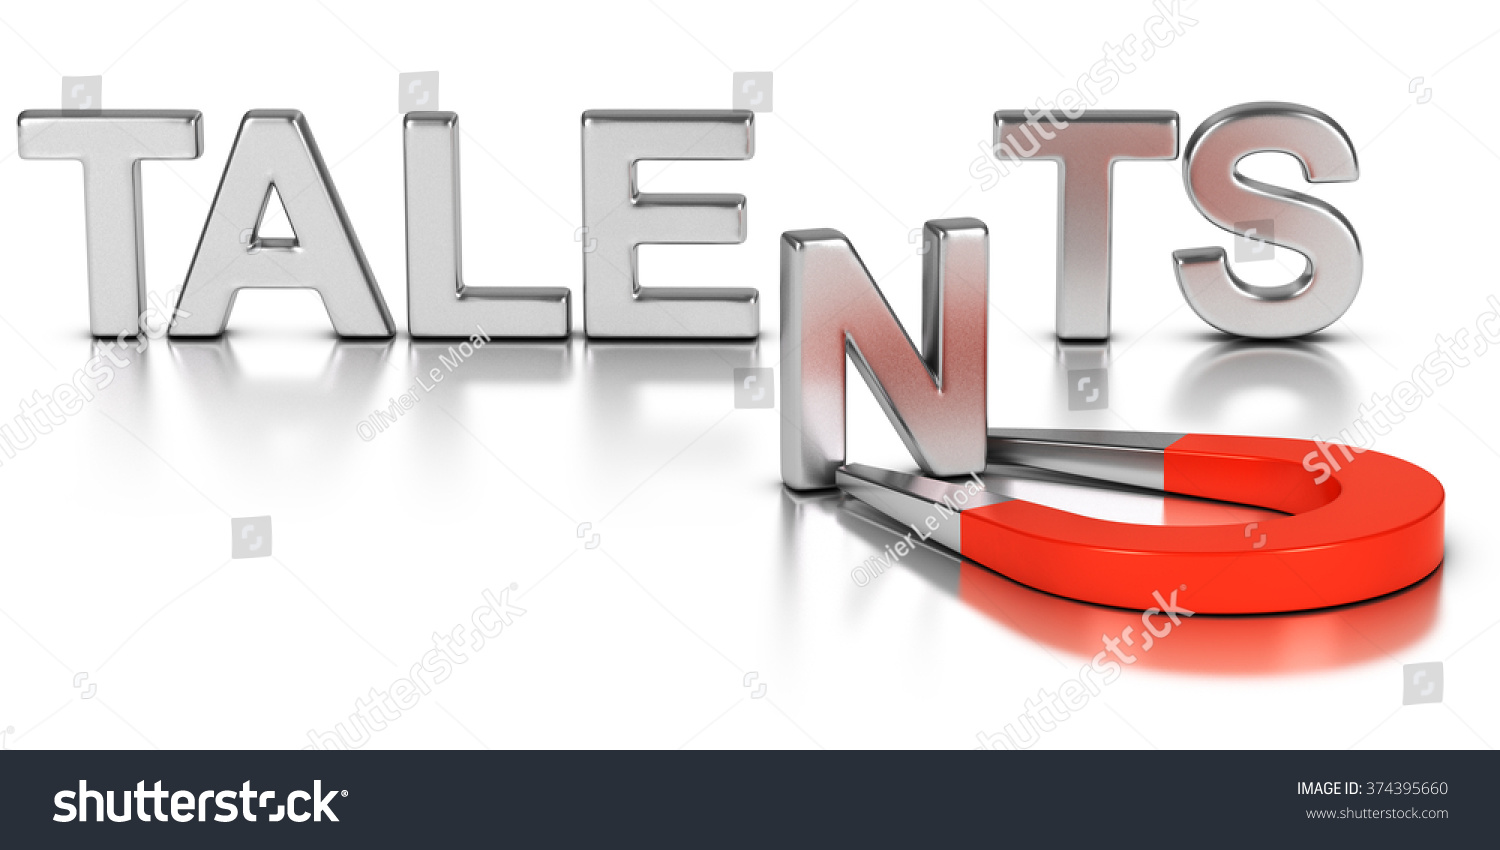 Talent Acquisition Il Ration Concept Letter N Of The Word Talents Attracted And Retained By A